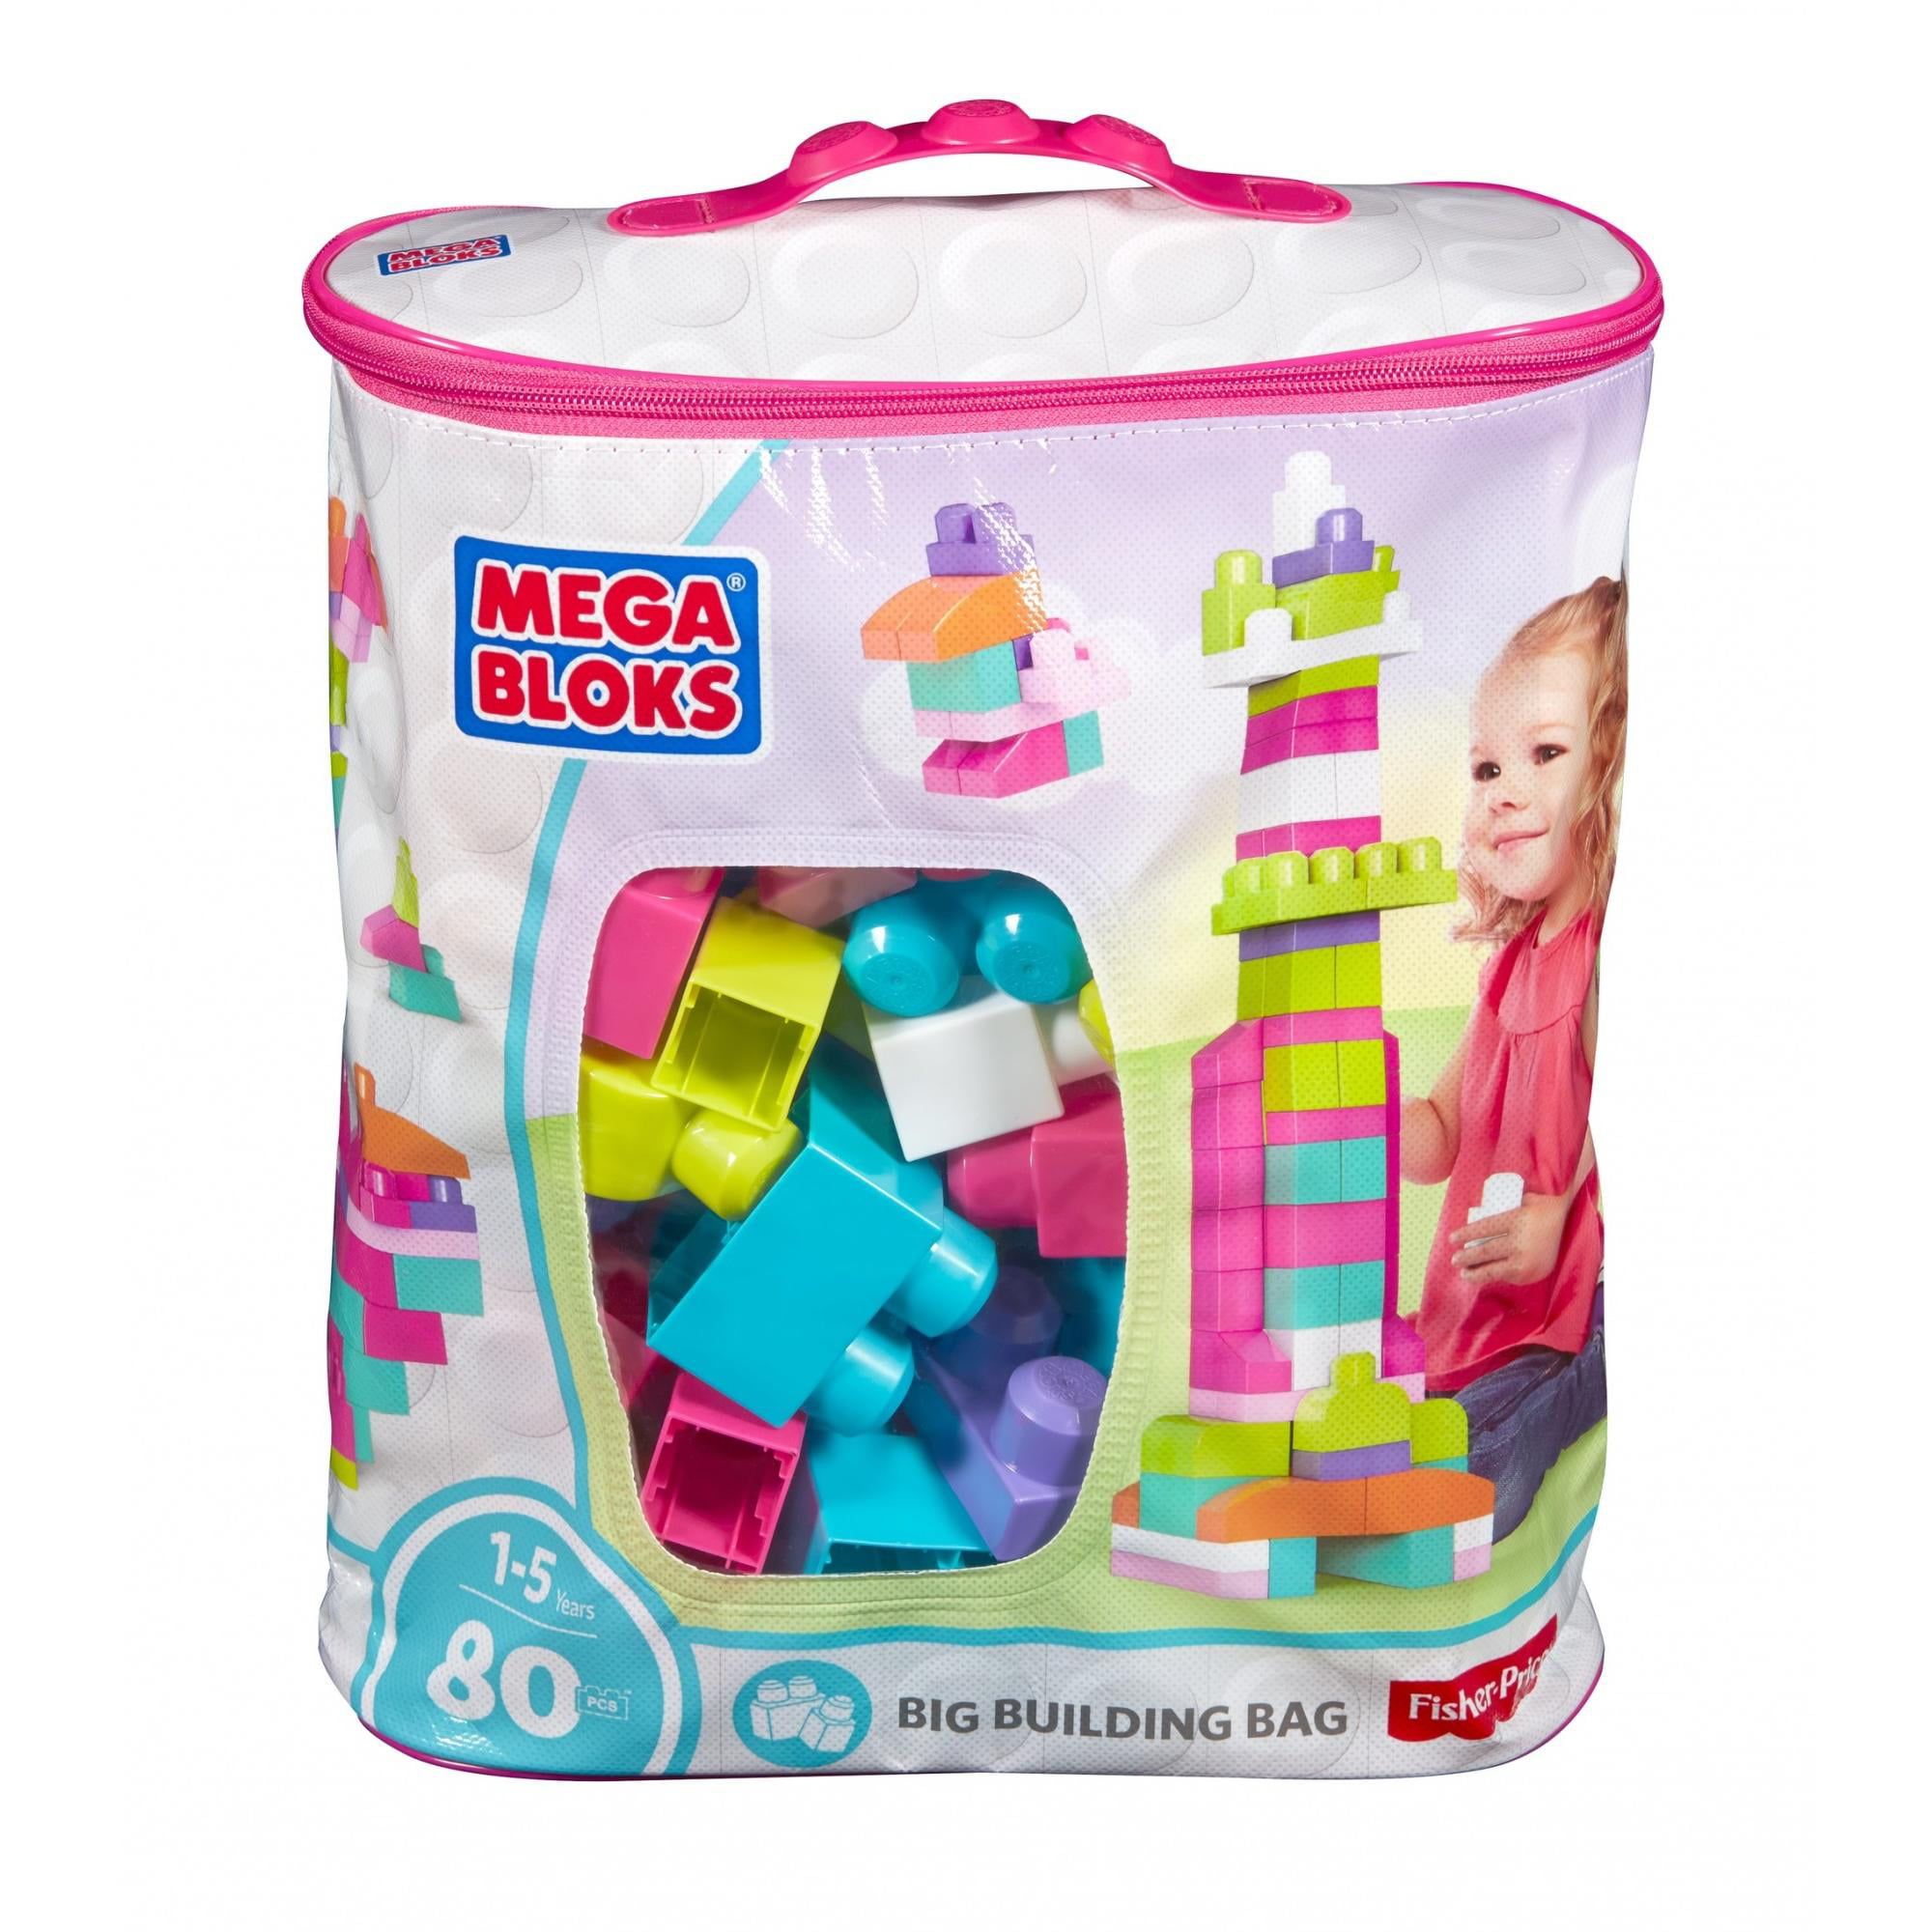 NEW Mega Bloks Big Building Bag Pink 80 Piece FREE SHIPPING